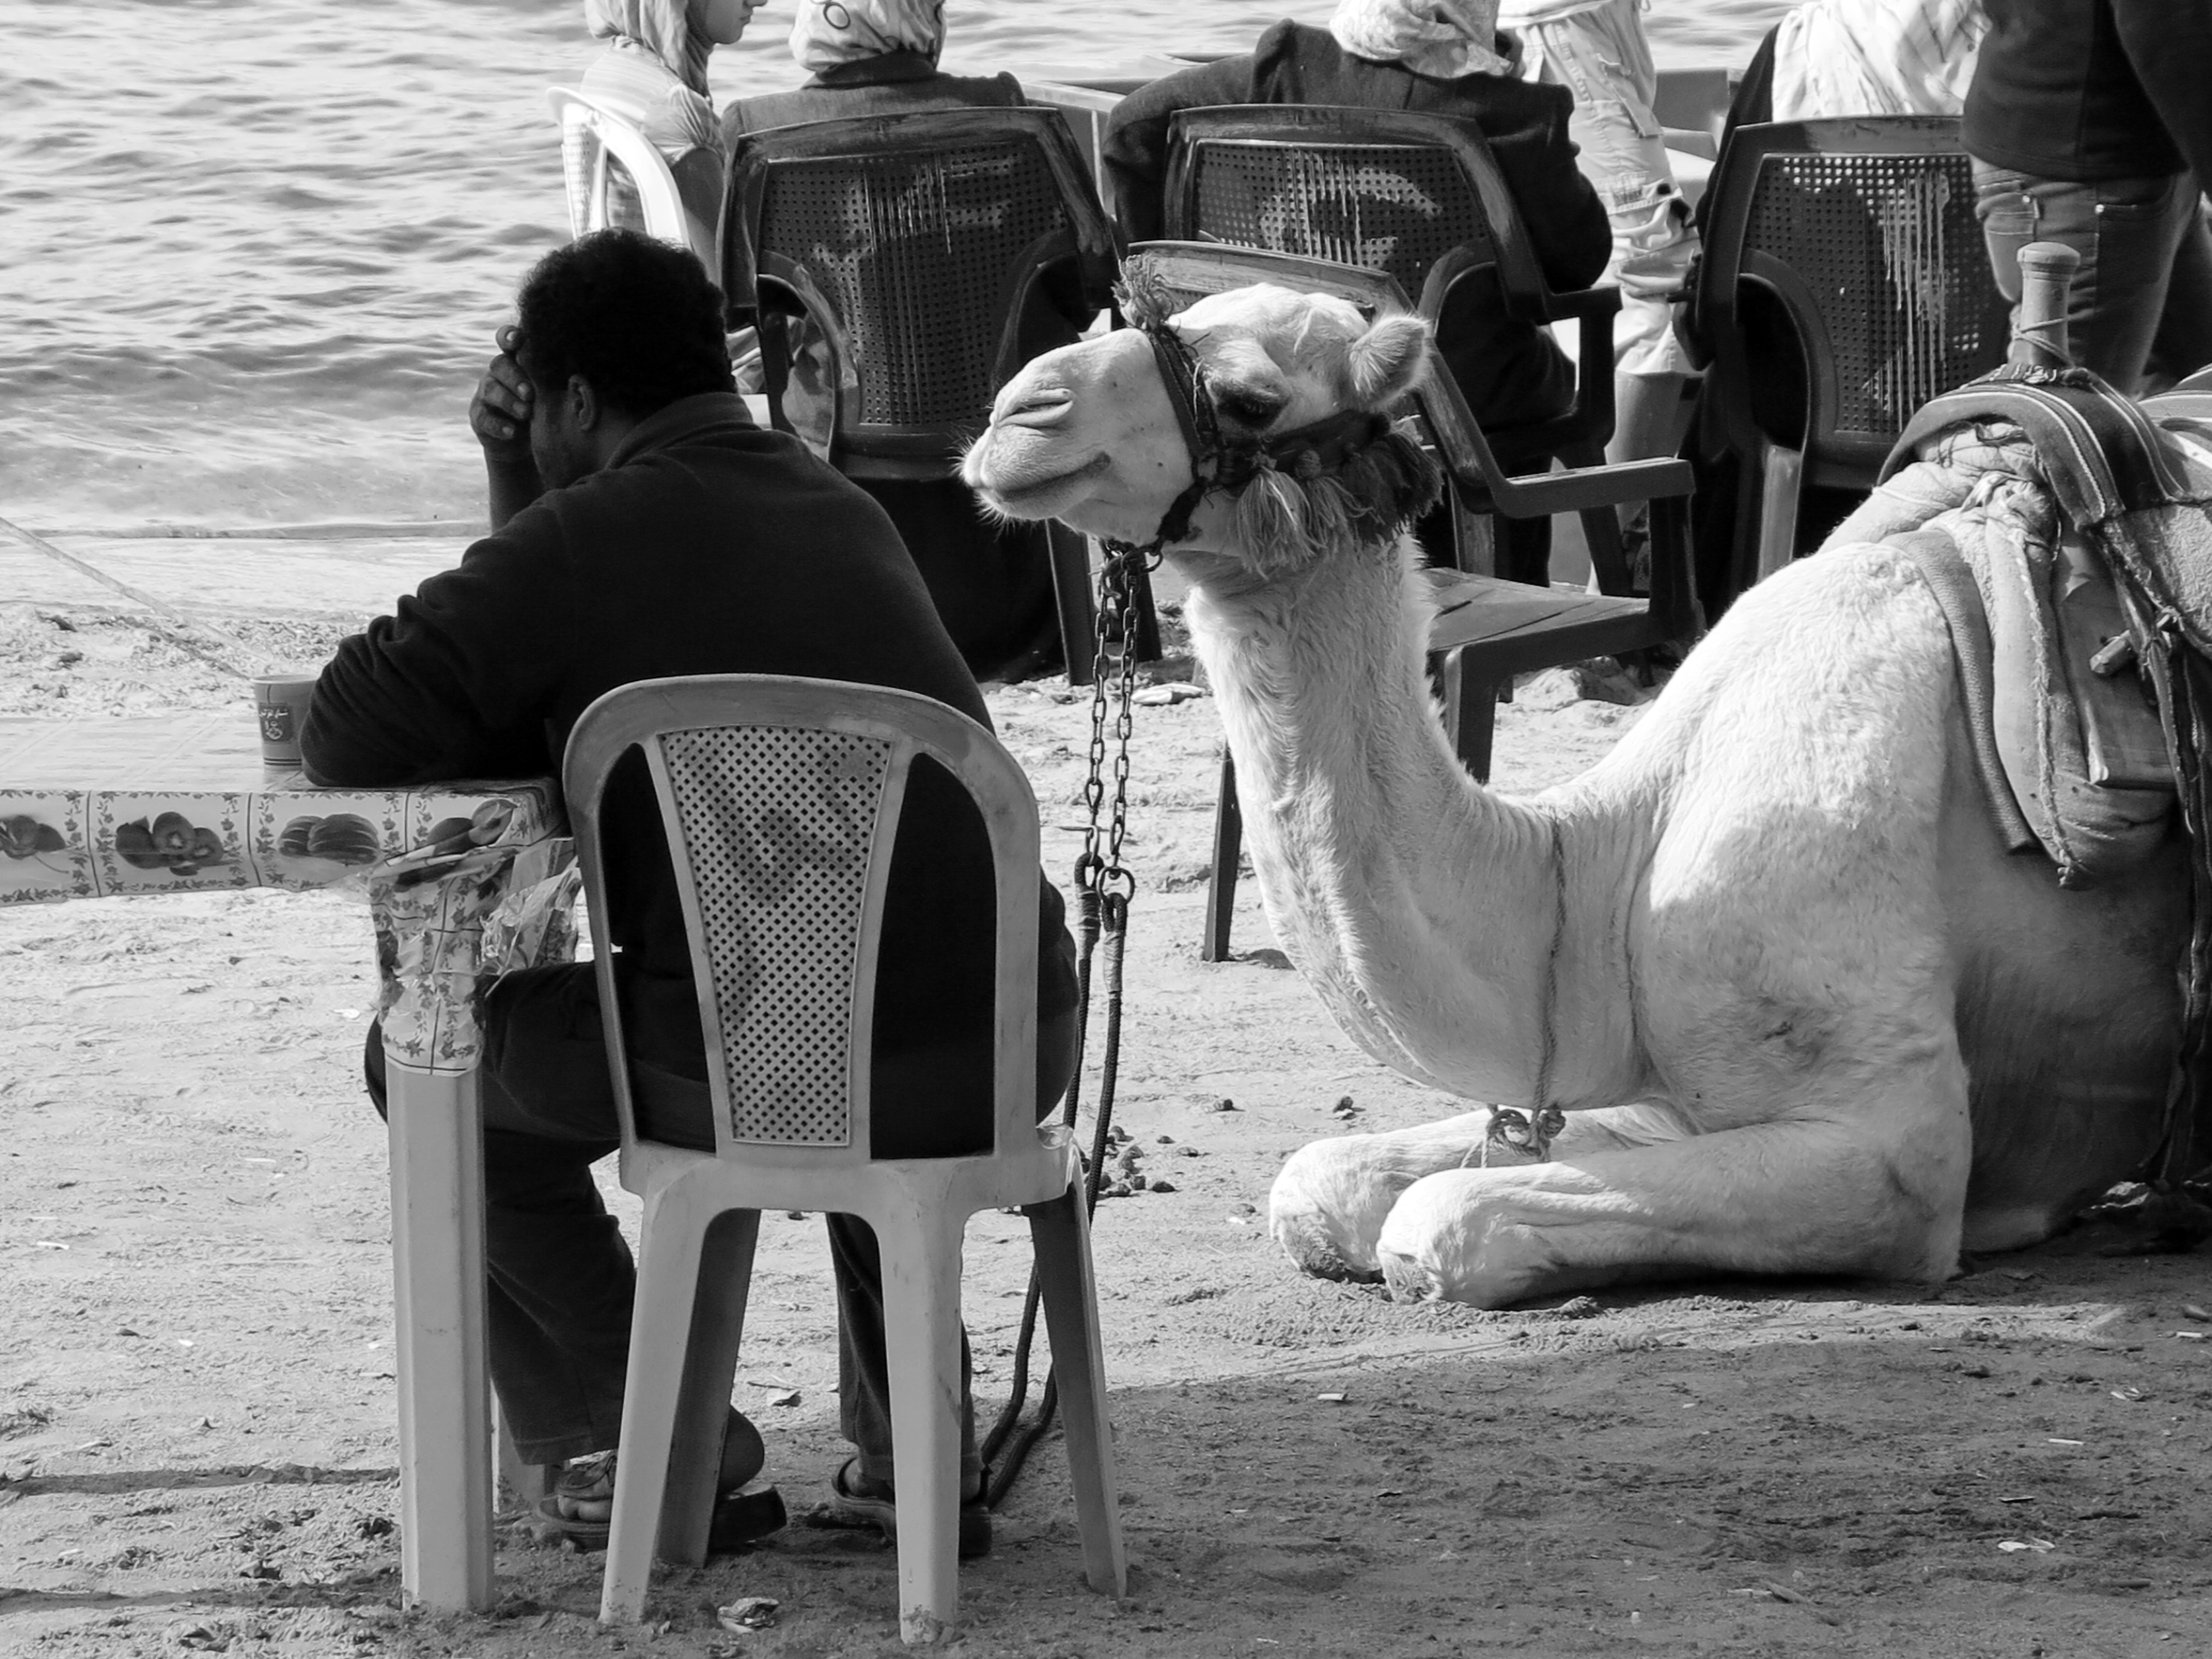 Waitung for a job. Stadtstrand Aqaba.